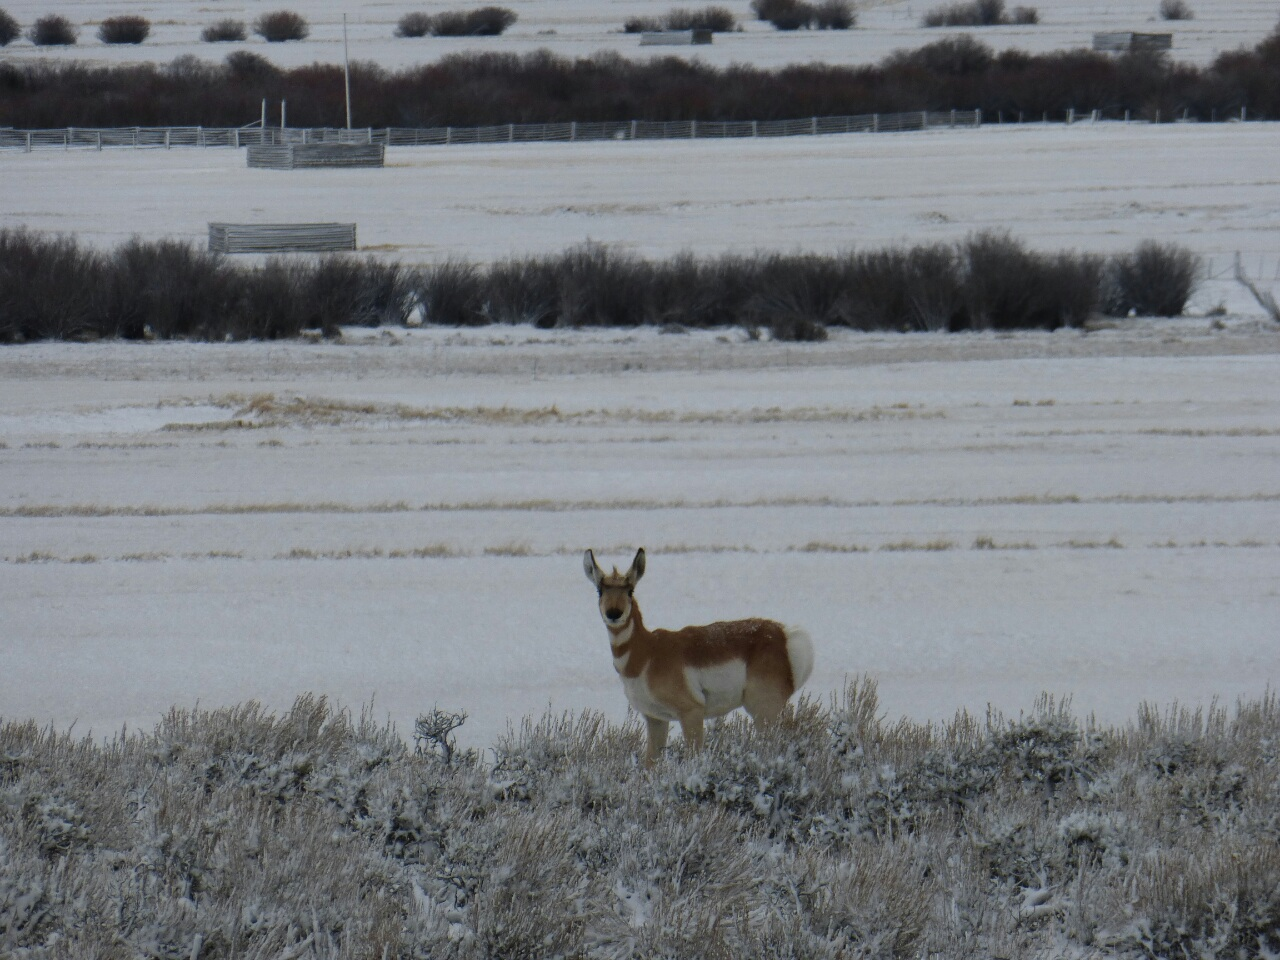 """First Antelope sighting, I bet it was his first """"Winter Divide Cyclist"""" sighting too"""